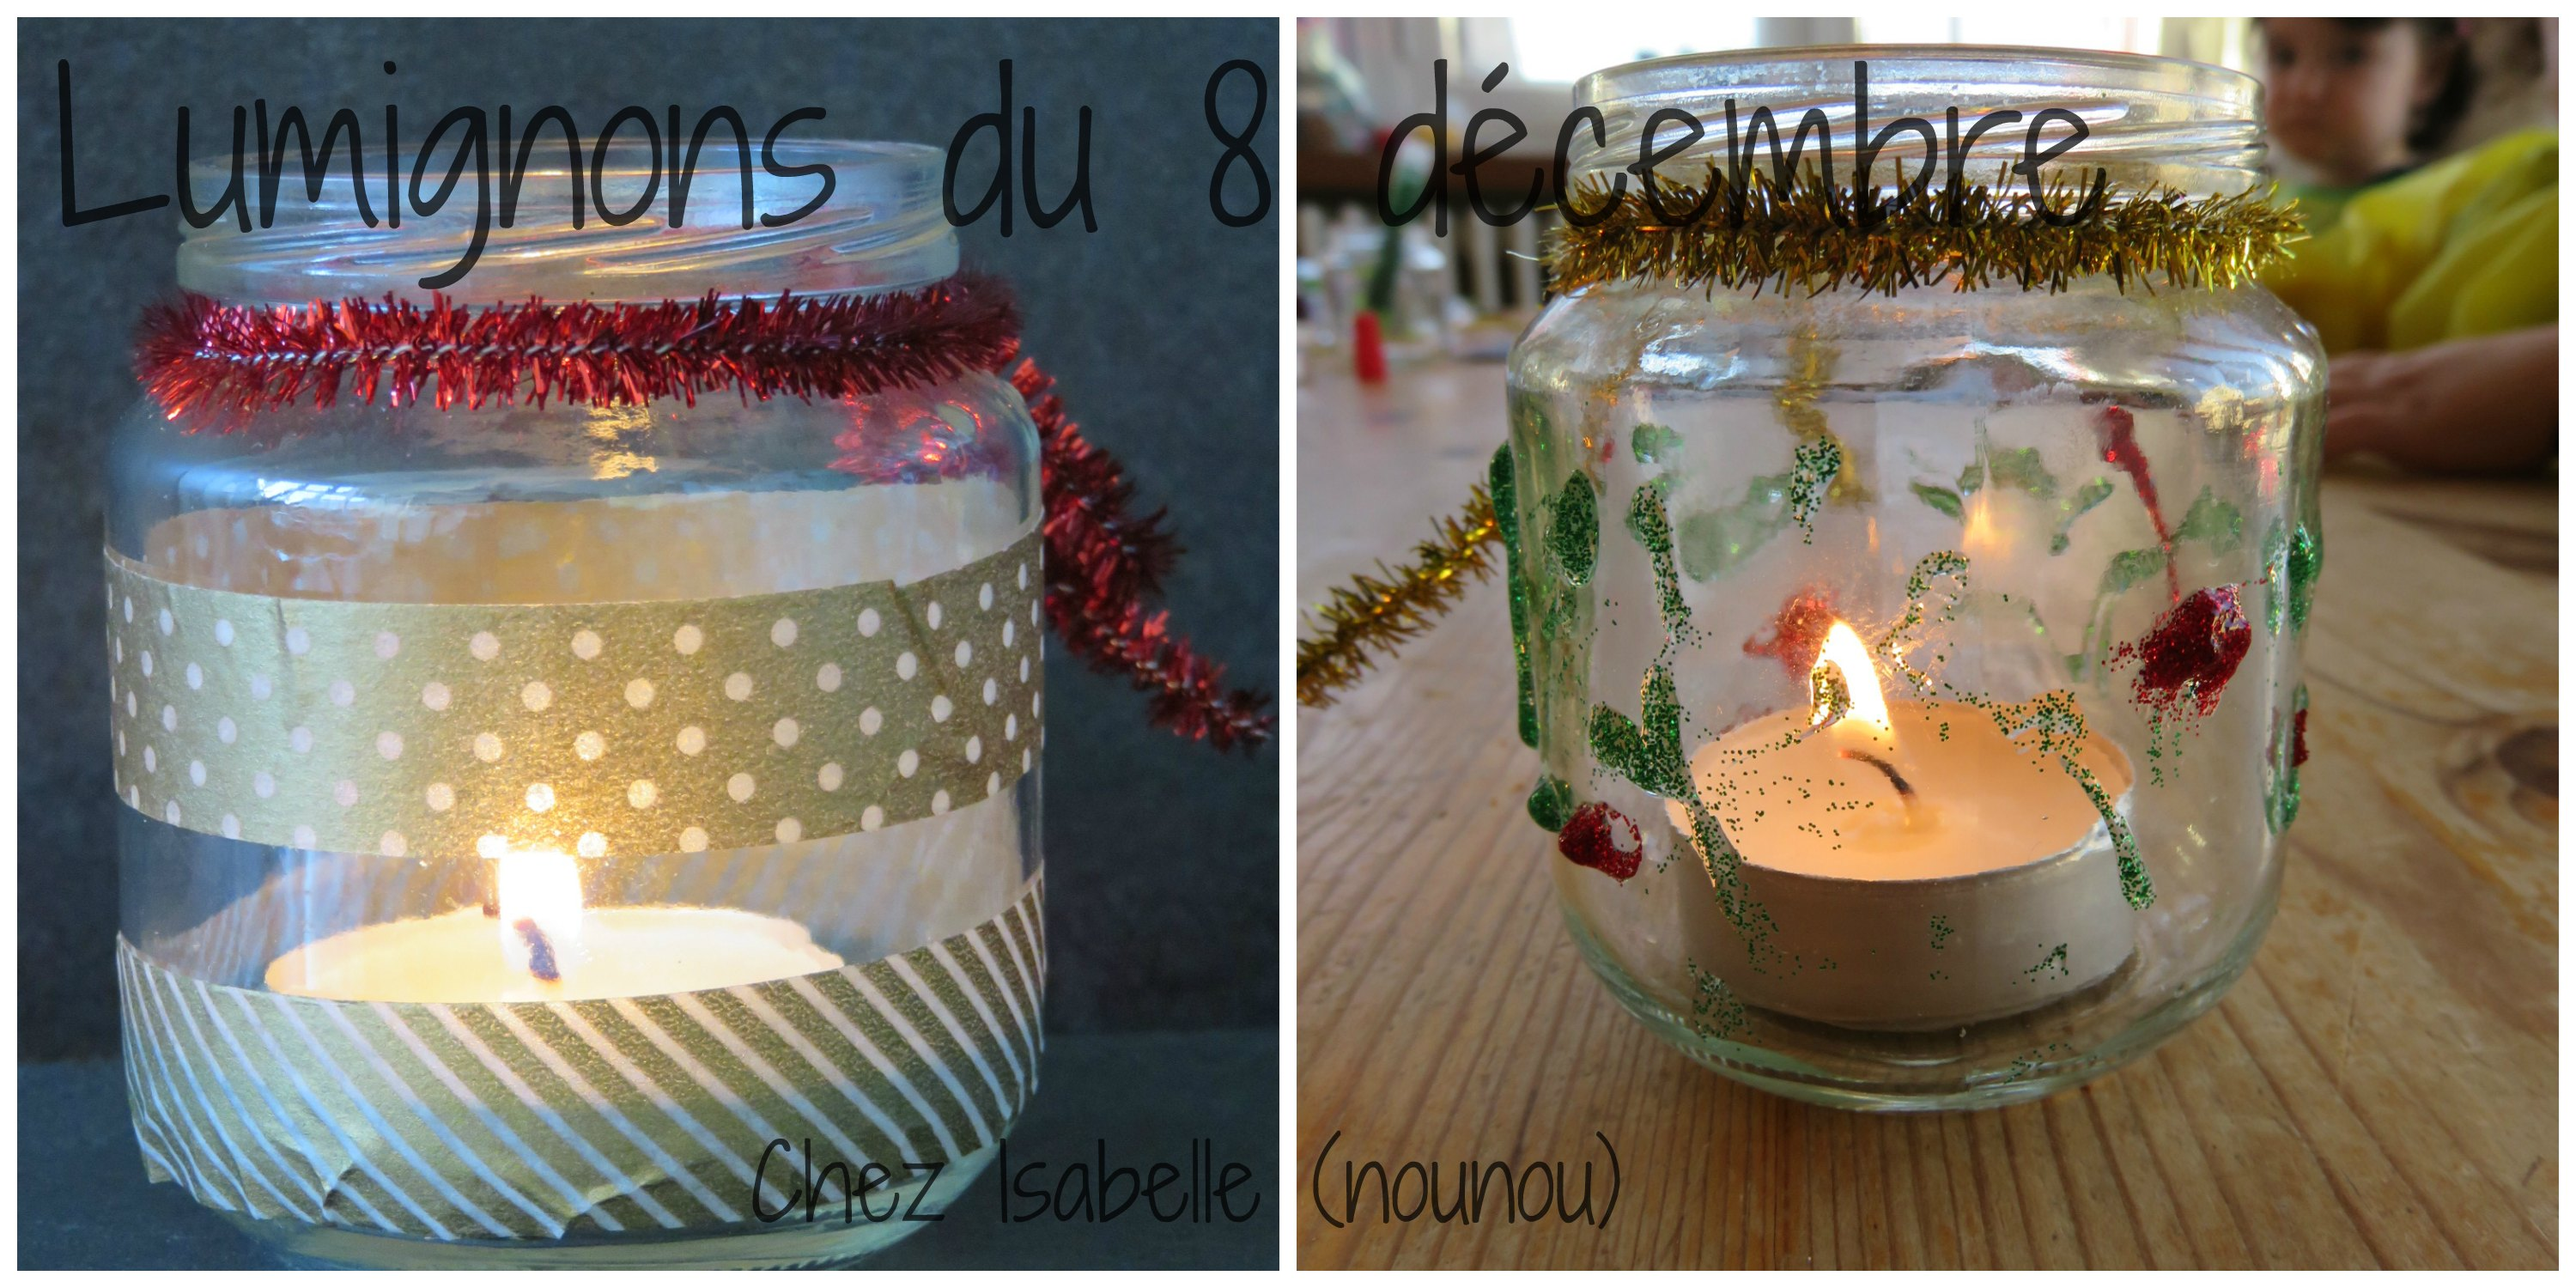 Le blog d 39 isabelle nounou ch tel guyon for Decoration lumignon 8 decembre